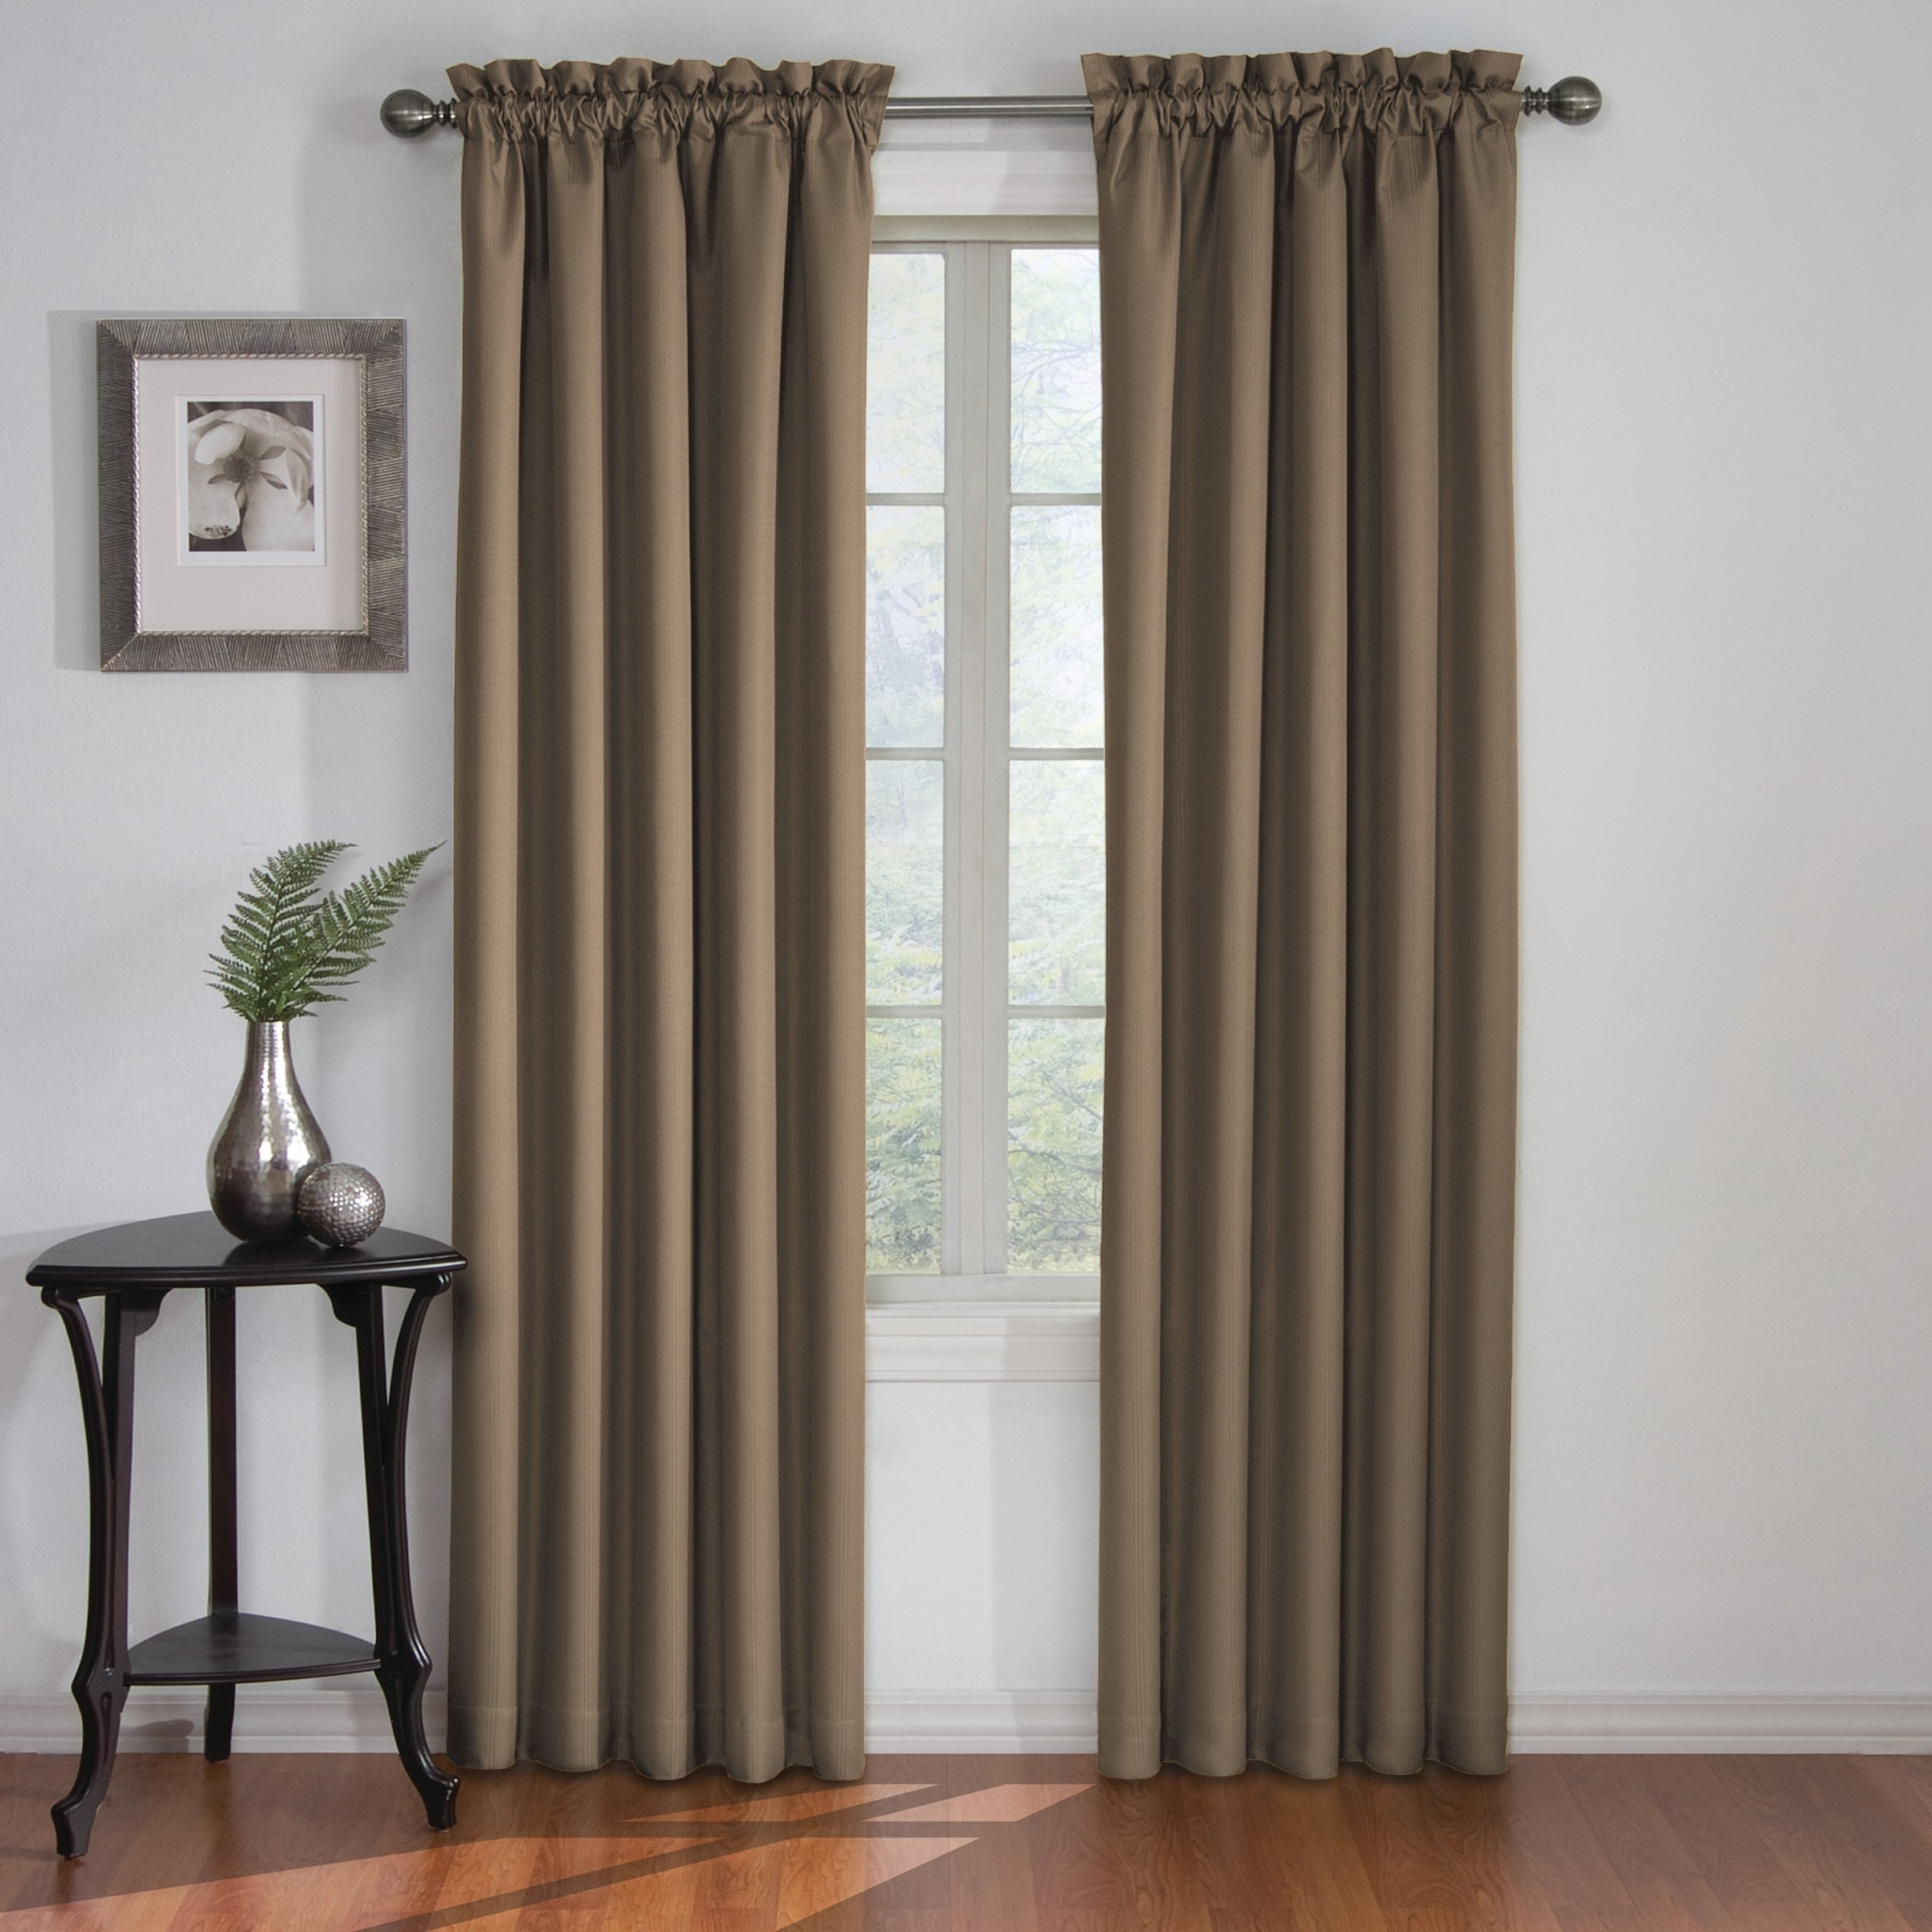 Eclipse Corinne Thermaback Curtain Panels For Trendy Eclipse Corinne Thermaback Curtain Panel (View 2 of 20)